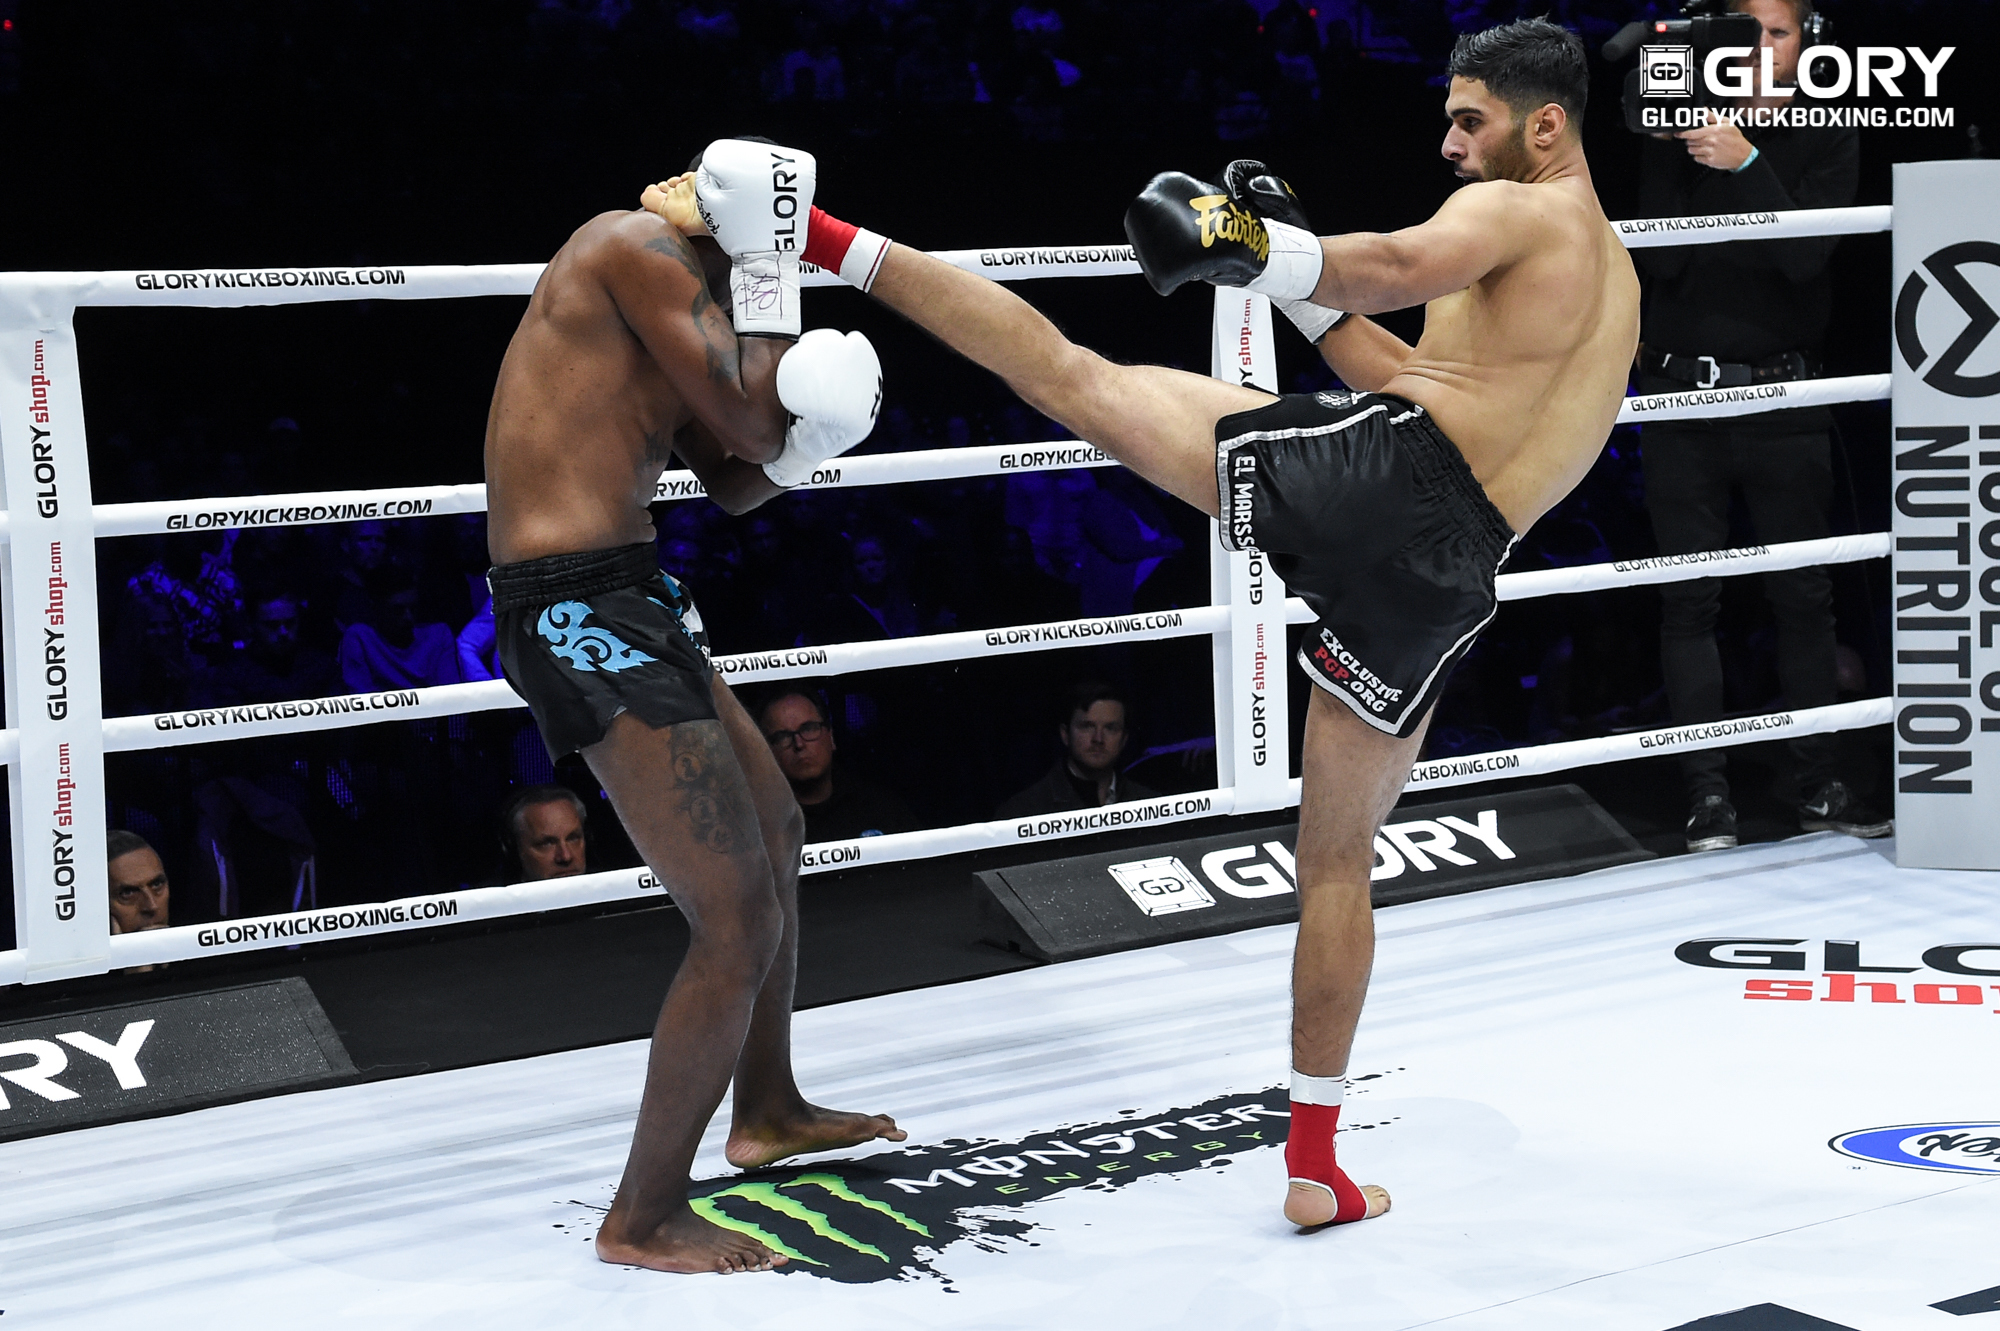 Hamicha head kick takes Simson out in first round